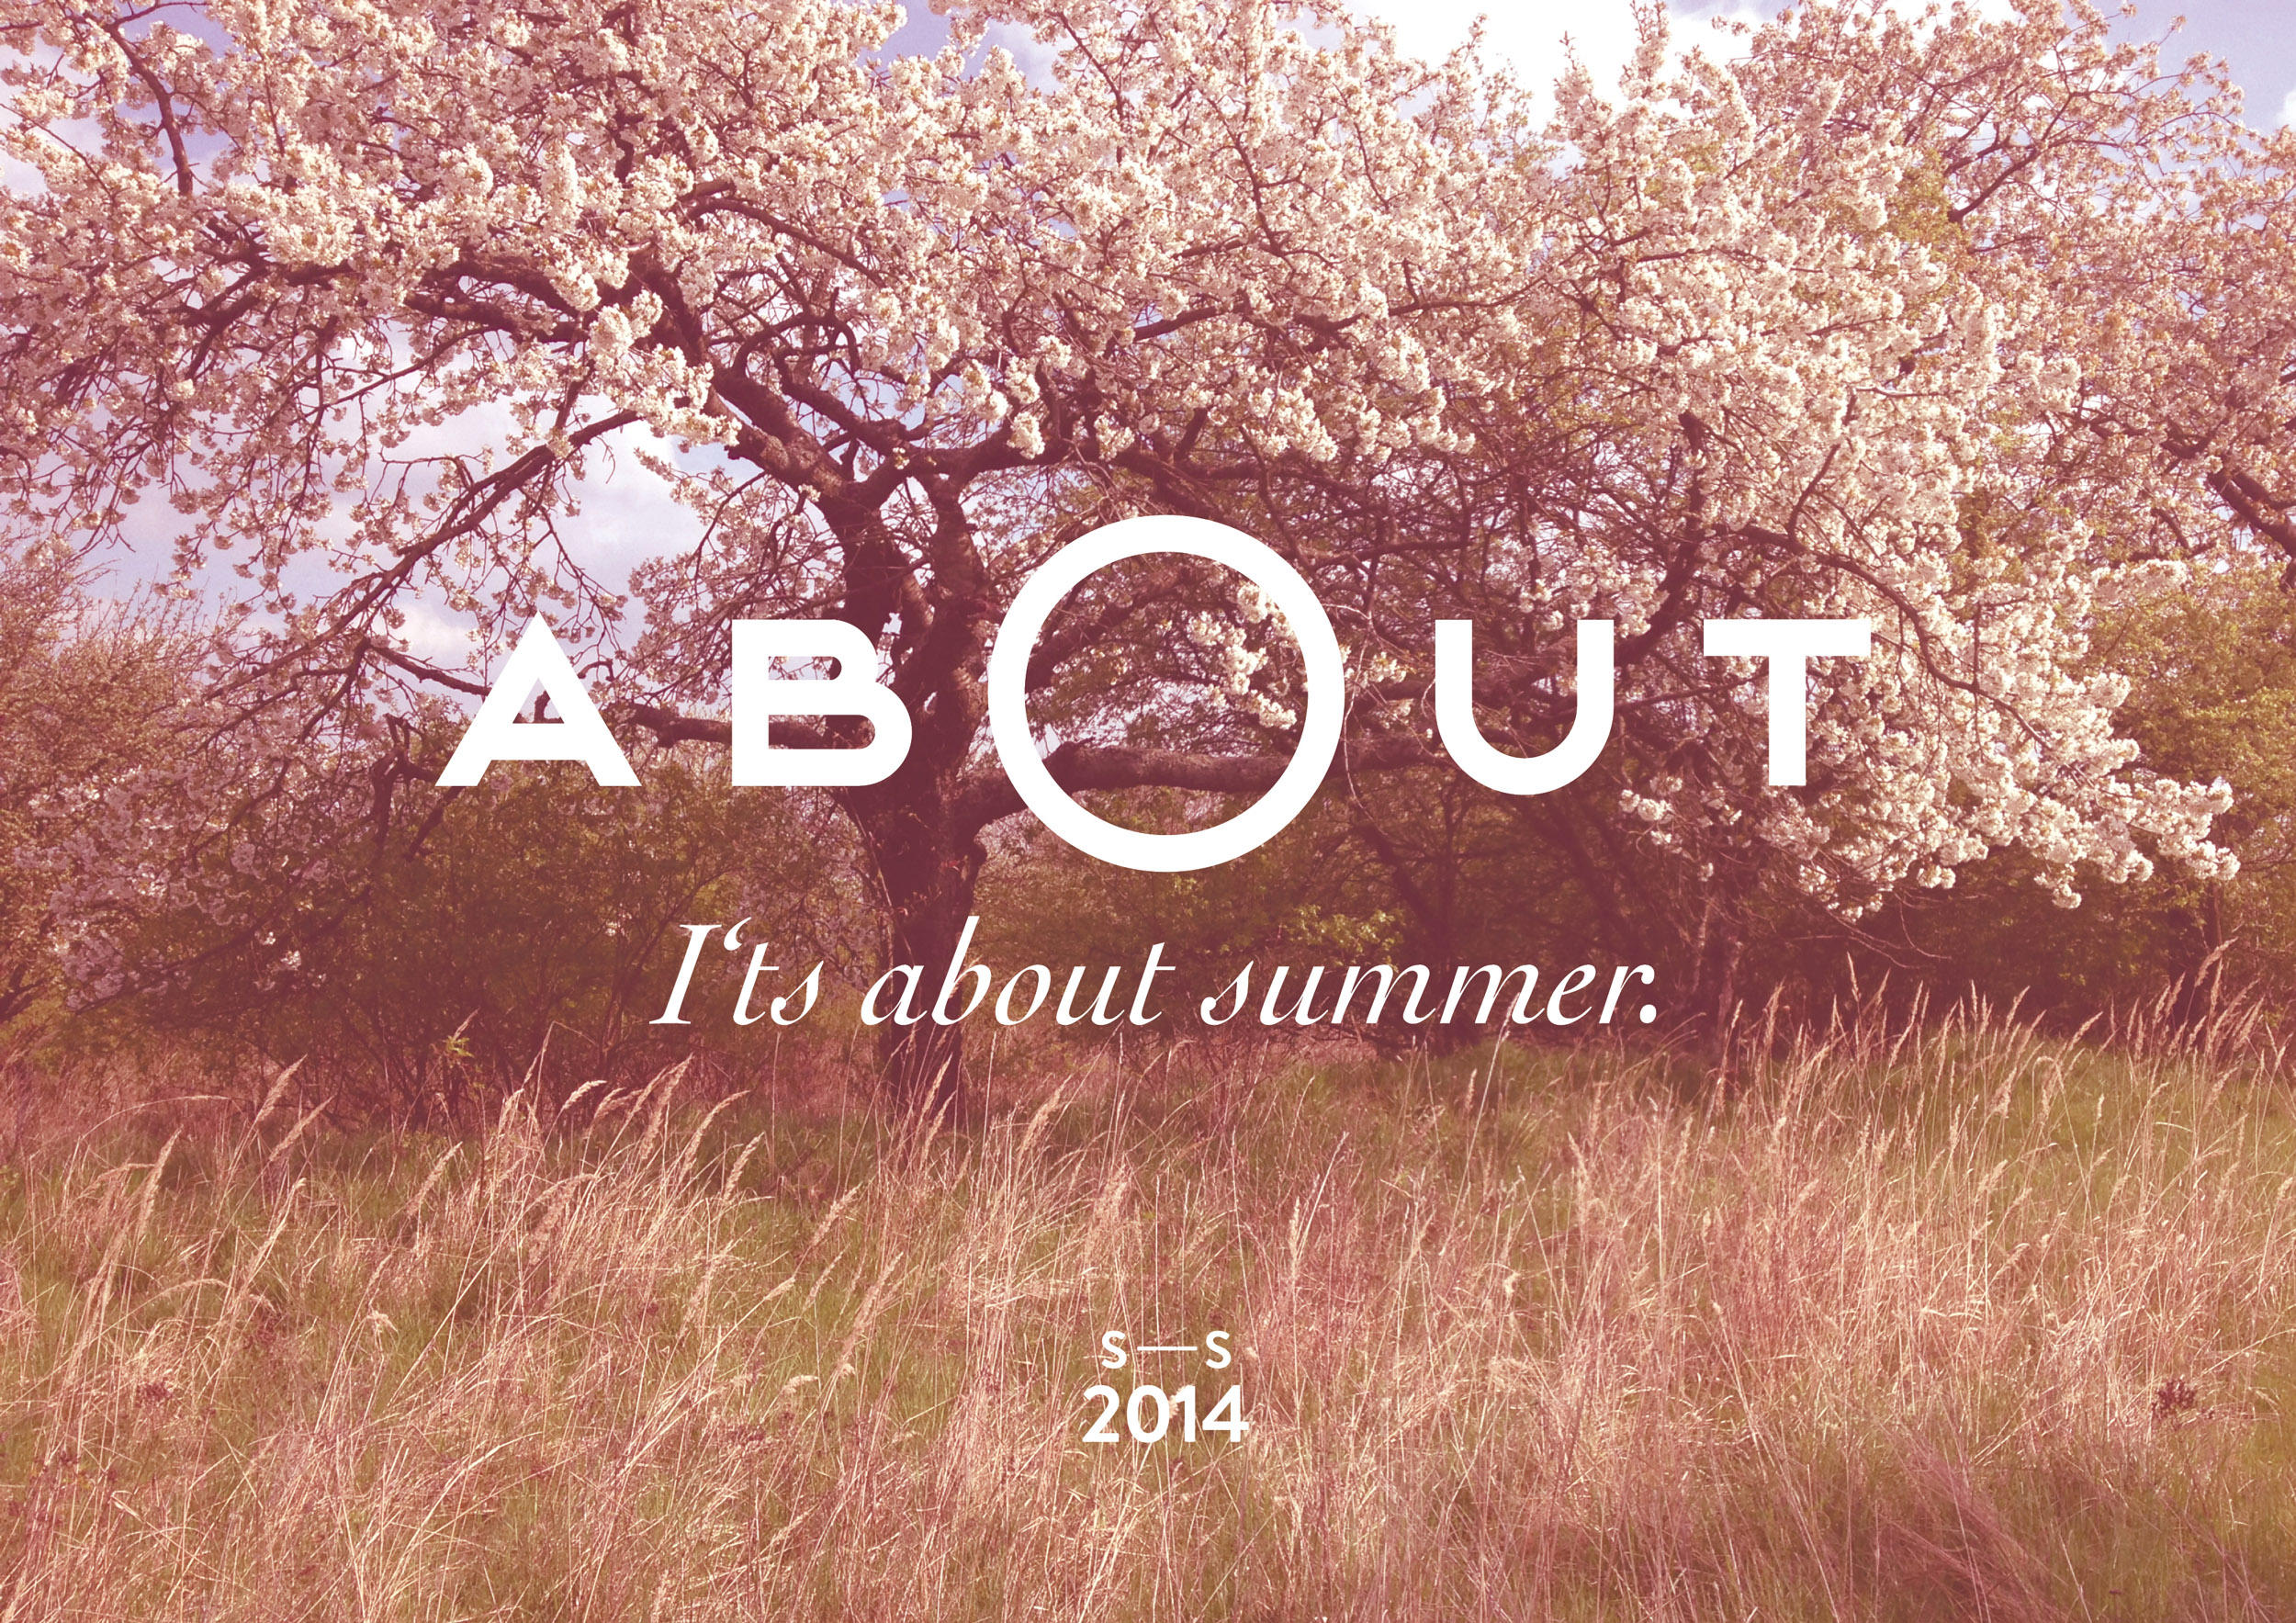 About summer